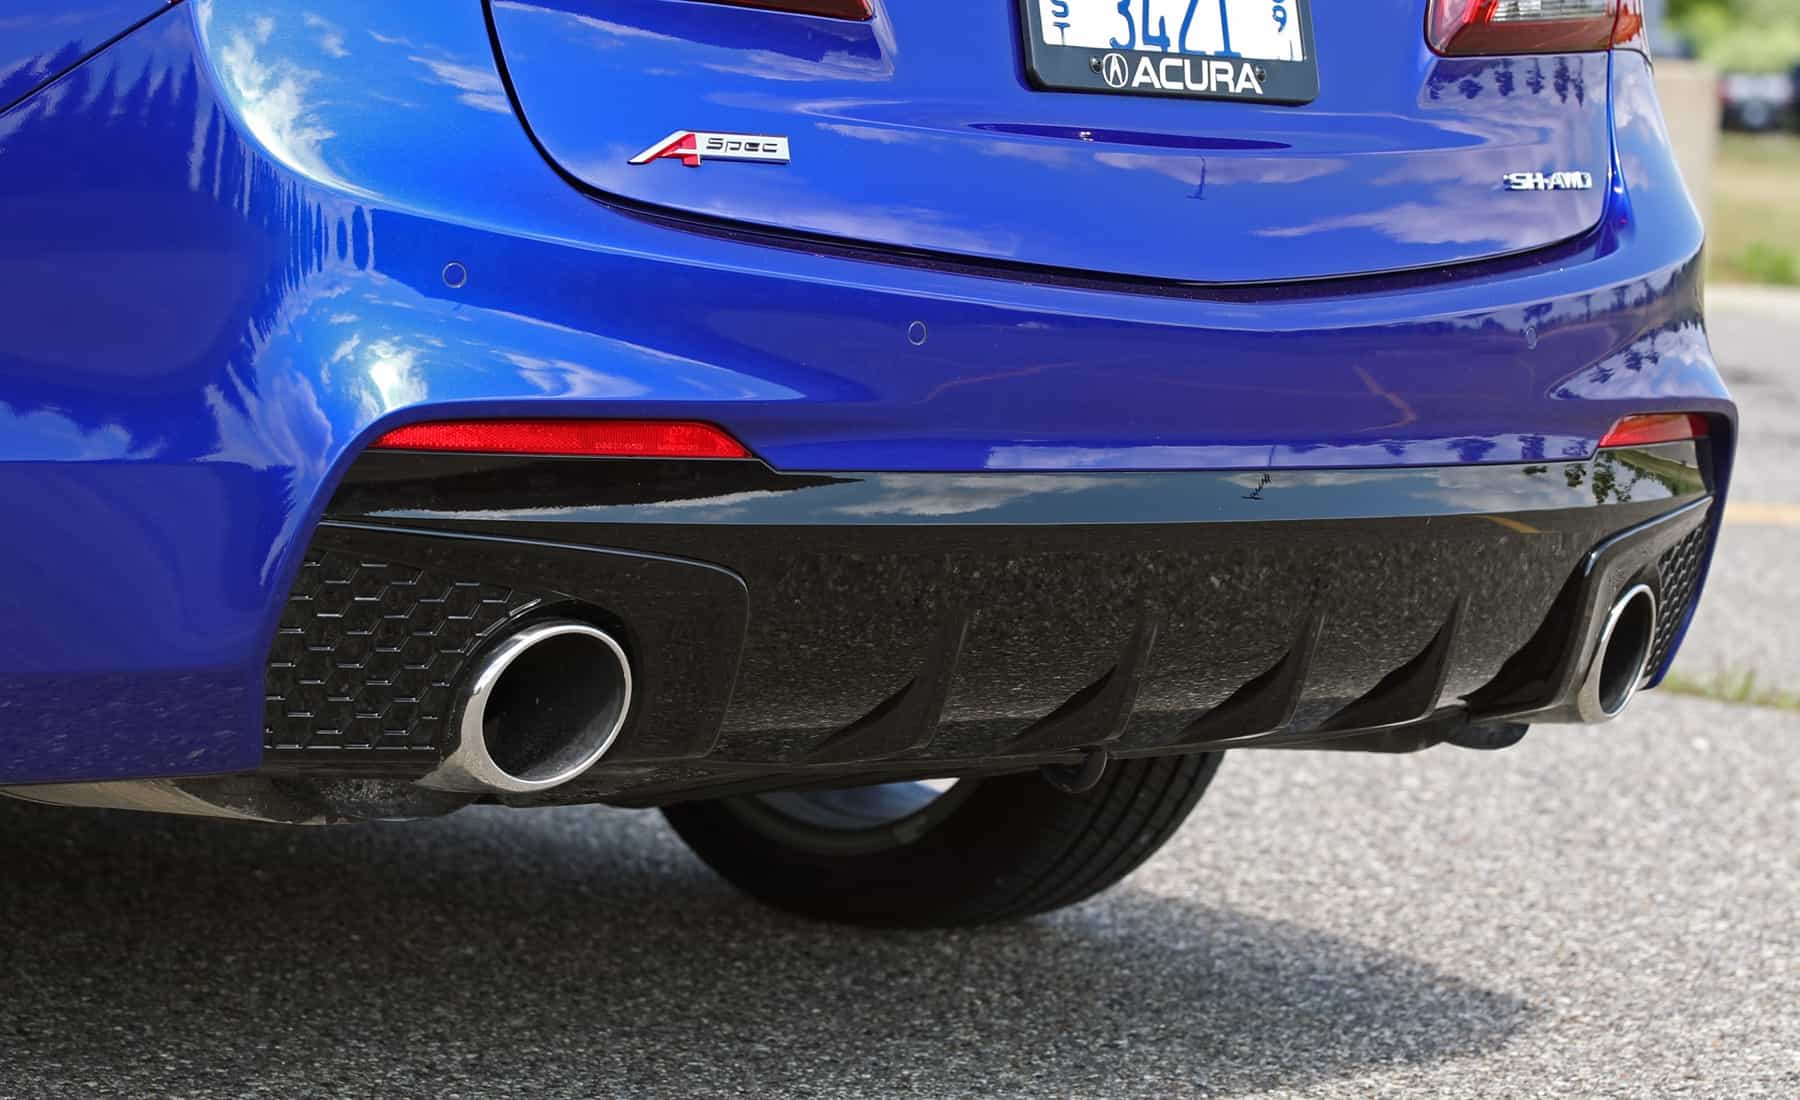 2018 Acura TLX Exterior View Rear Body And Exhaust Muffler (View 33 of 46)